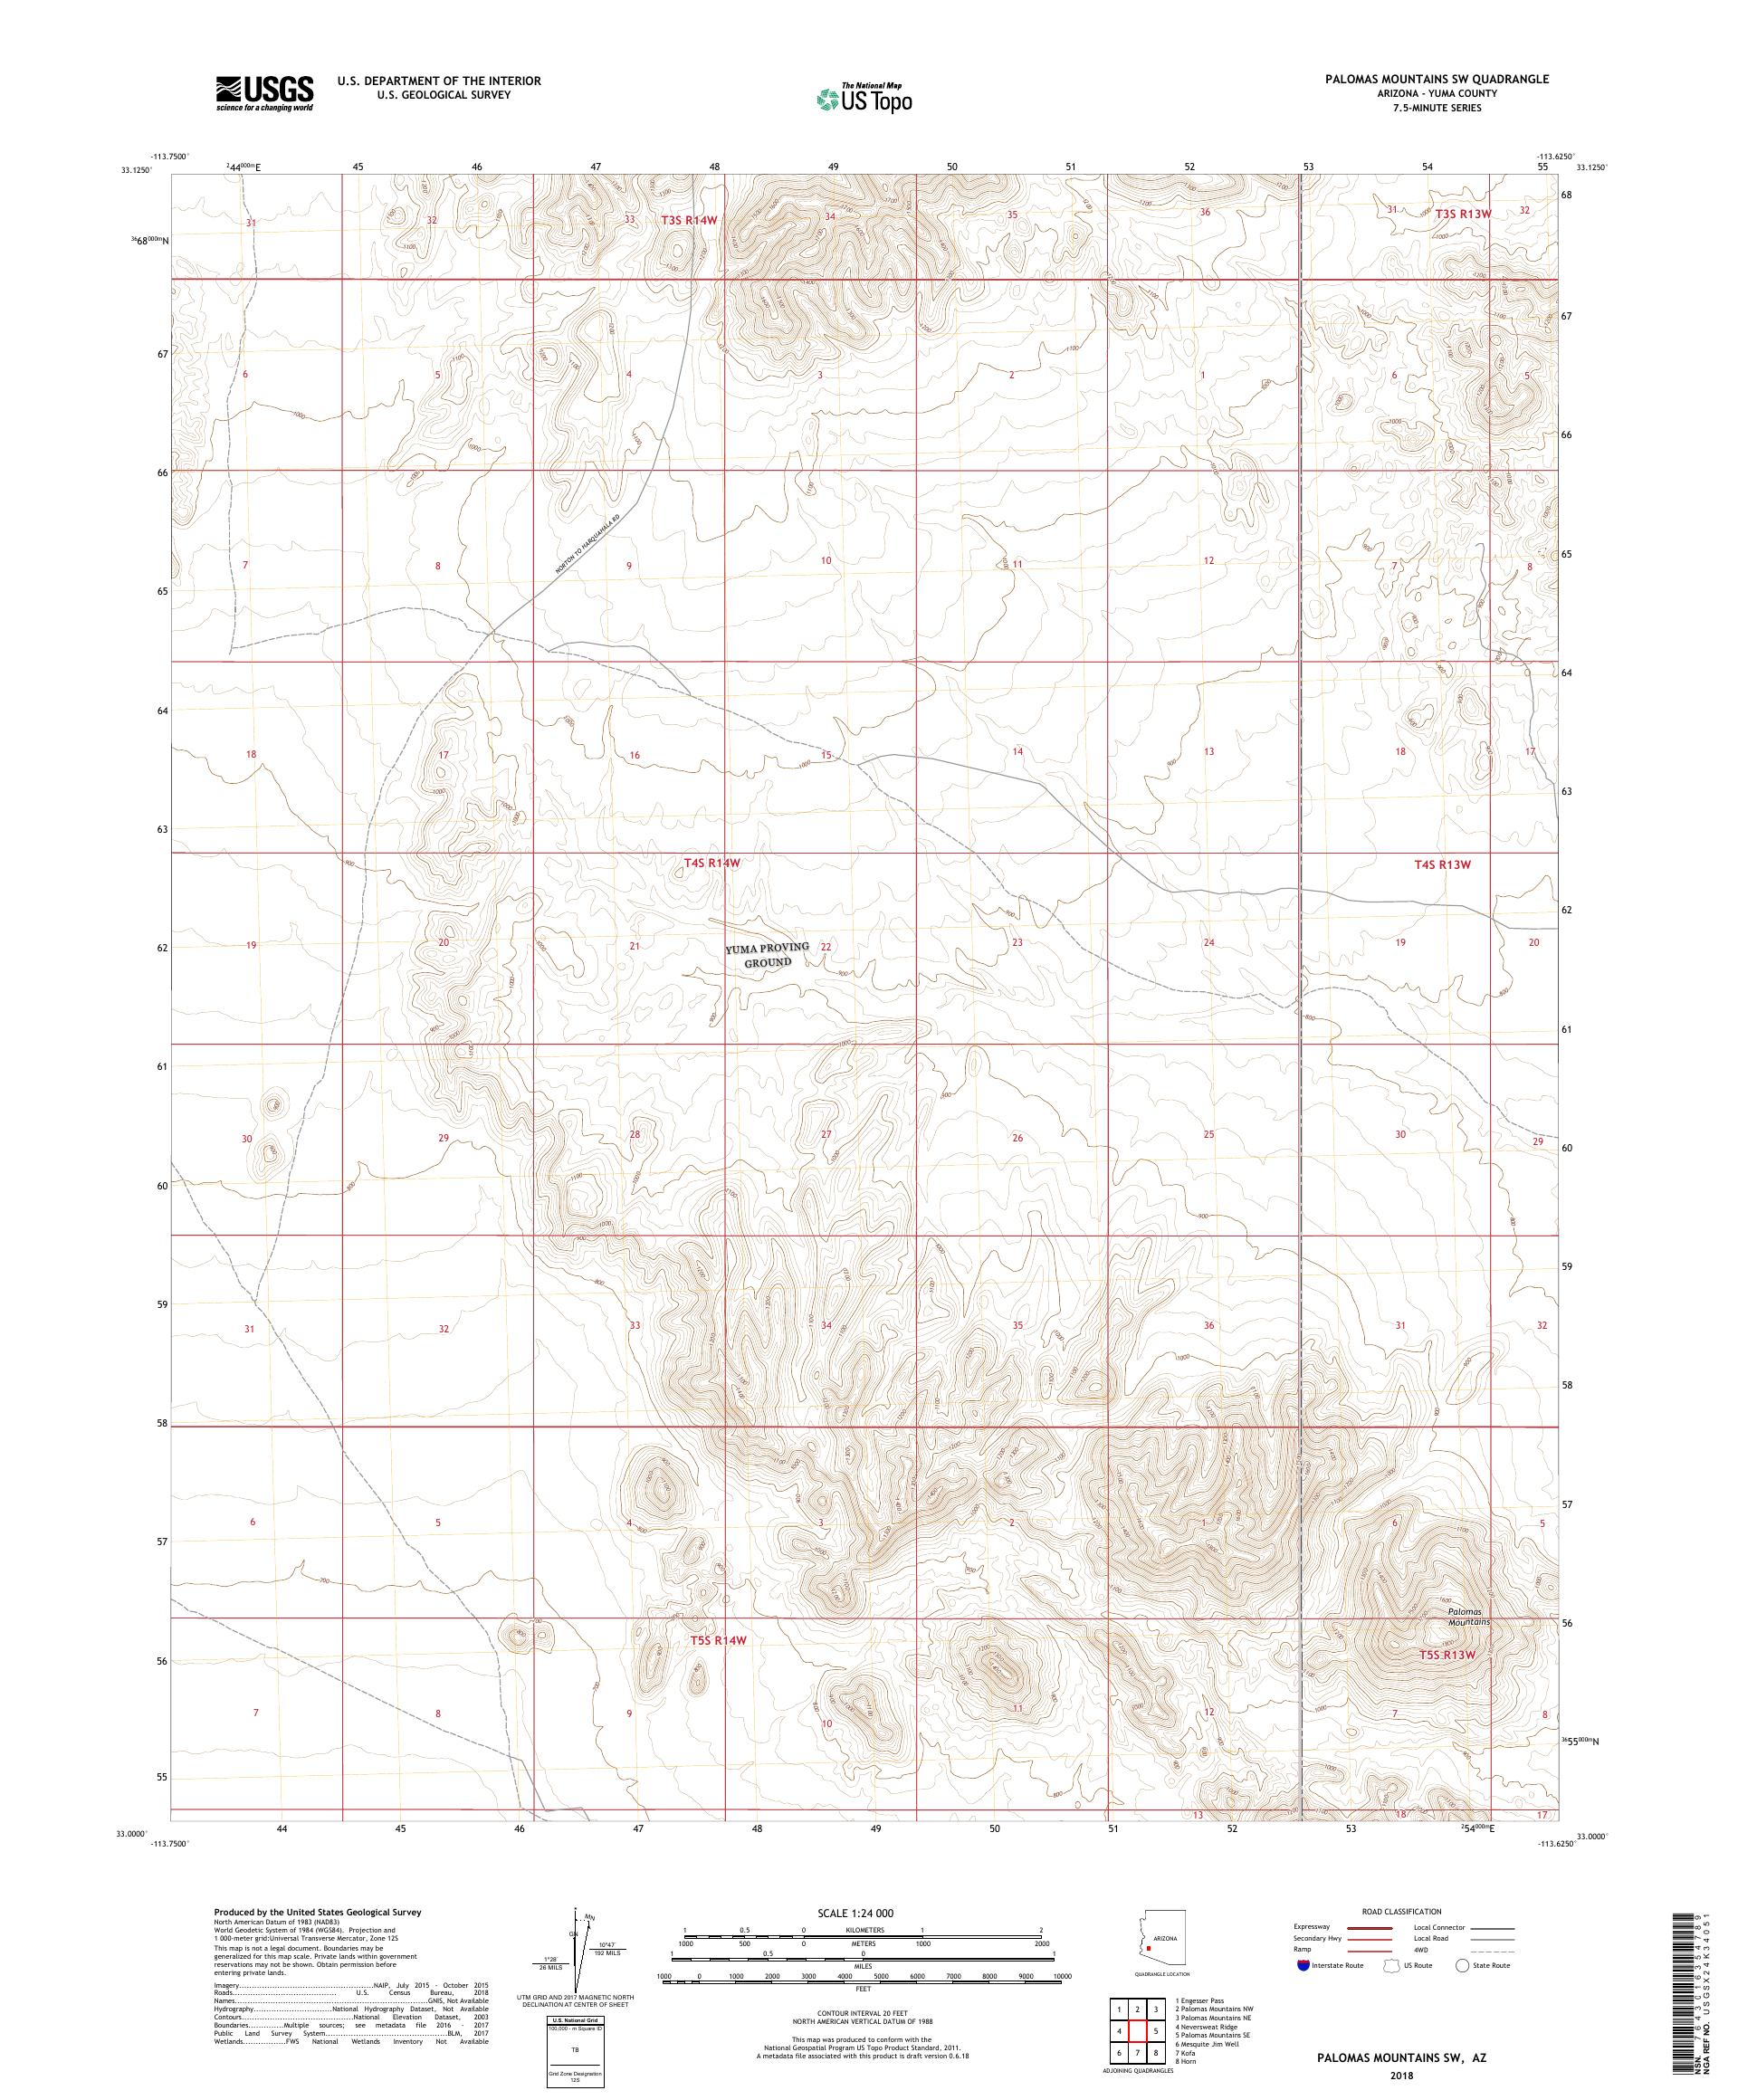 MyTopo Palomas Mountains SW, Arizona USGS Quad Topo Map